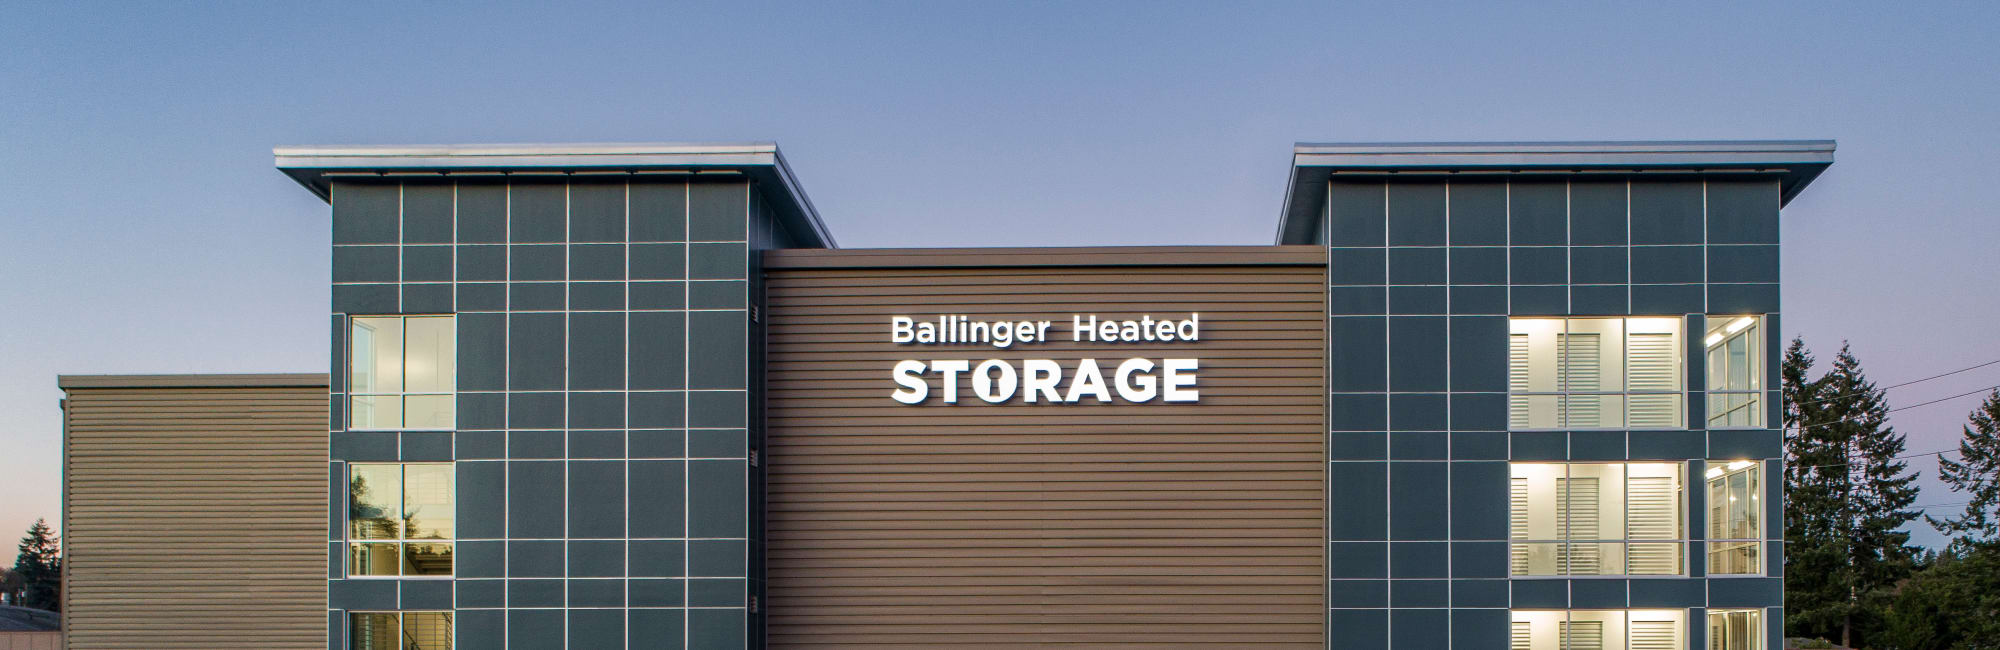 Reviews about Ballinger Heated Storage in Shoreline, Washington